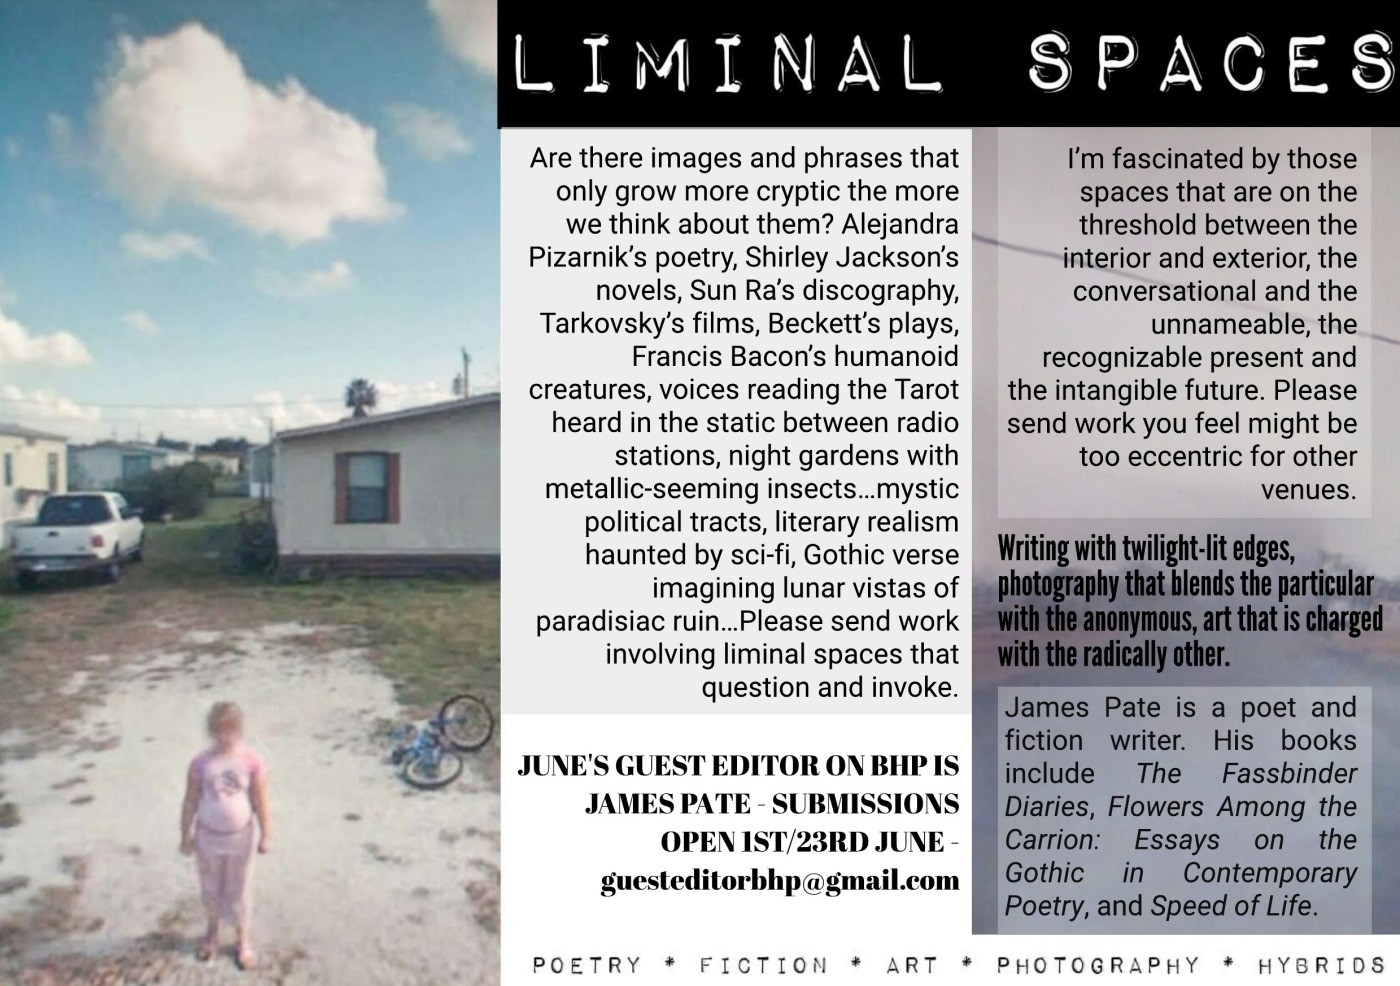 Guest Editor For June Is James Pate!!! Theme is: LIMINAL